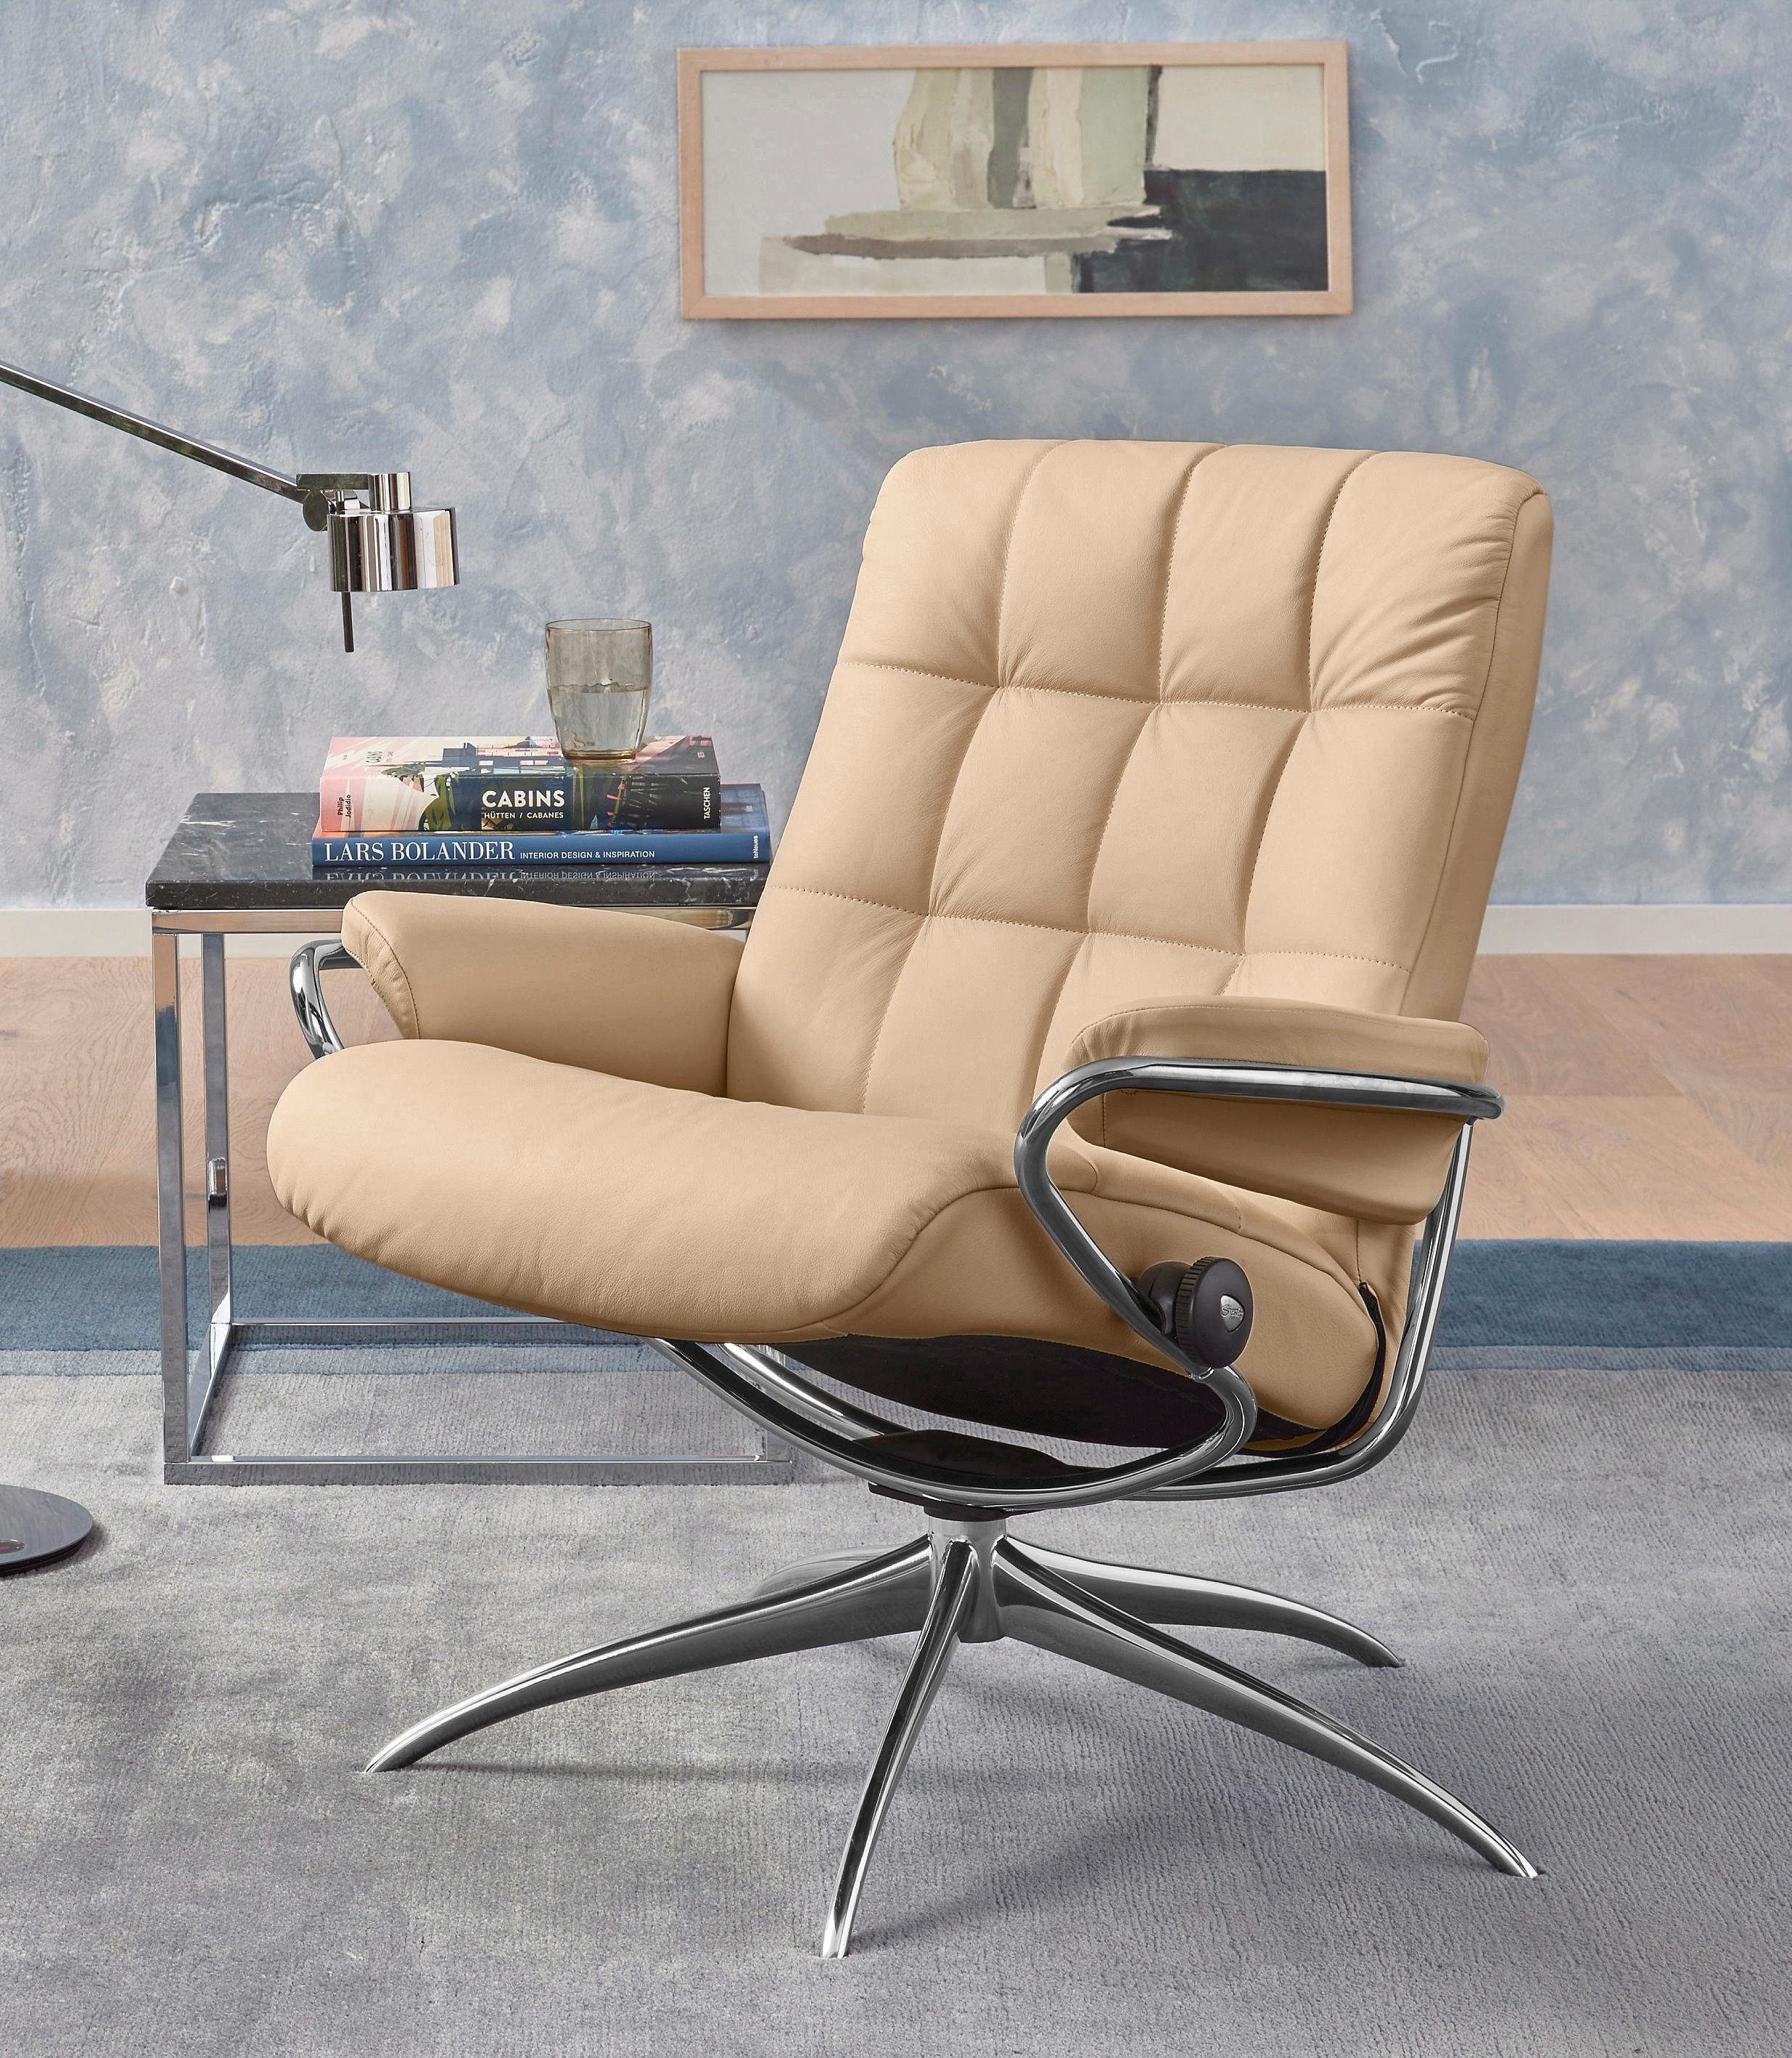 Stressless Sessel Funktion Stressless Relaxsessel London Mit Star Base In 2 Höhen Mit Relax Funktion Online Kaufen Otto